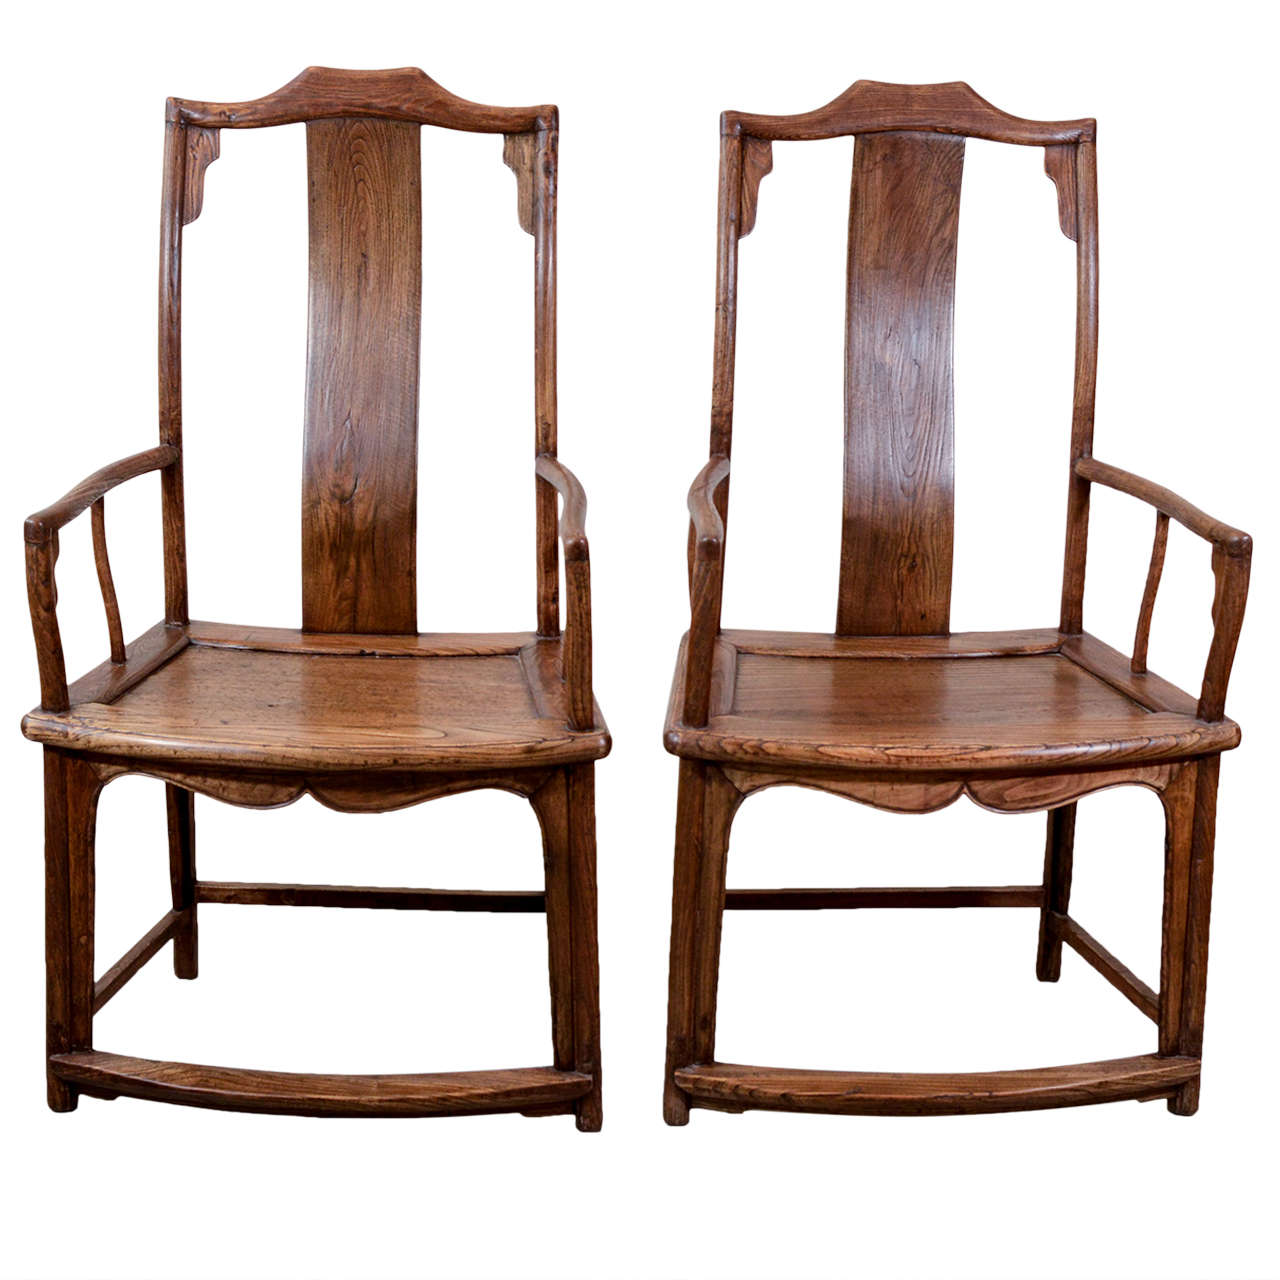 Antique chinese officials chairs at 1stdibs for Asian chairs for sale